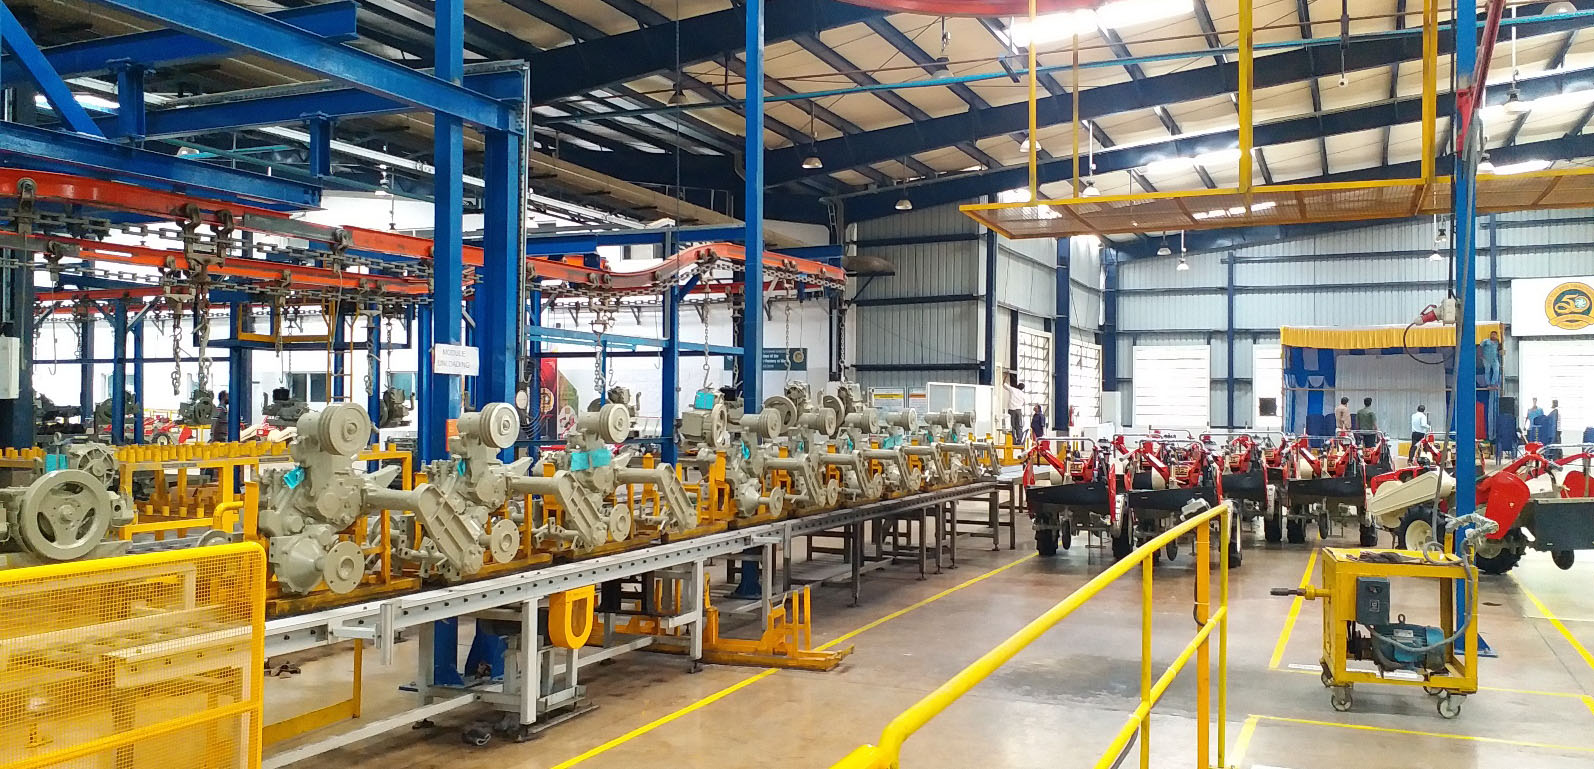 Production line at Malur